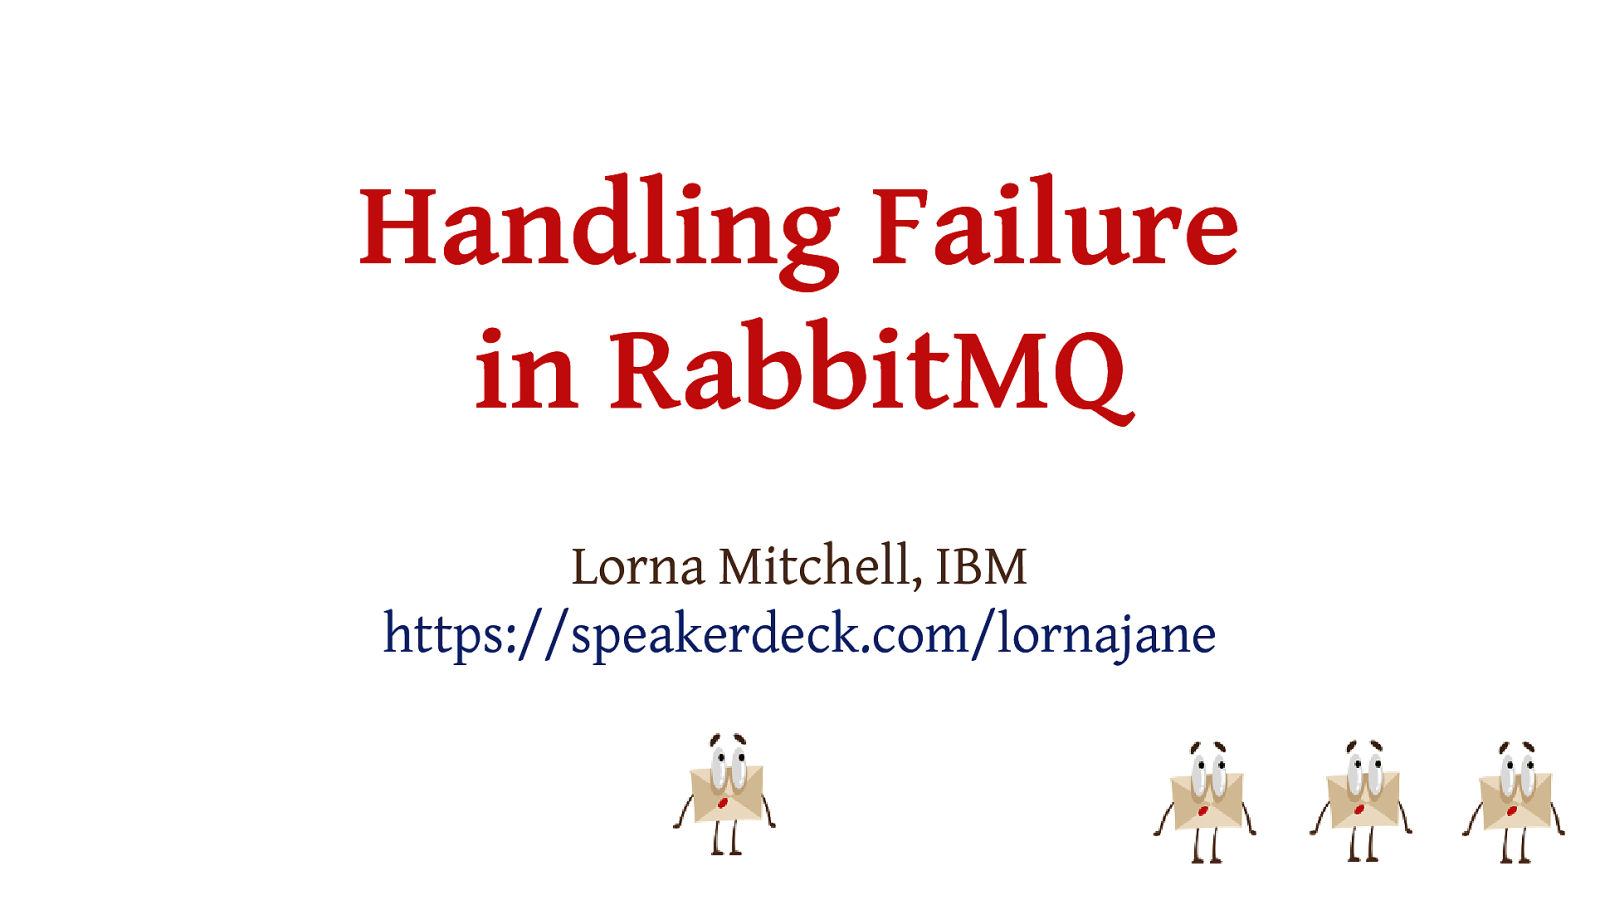 Handling Failure in RabbitMQ